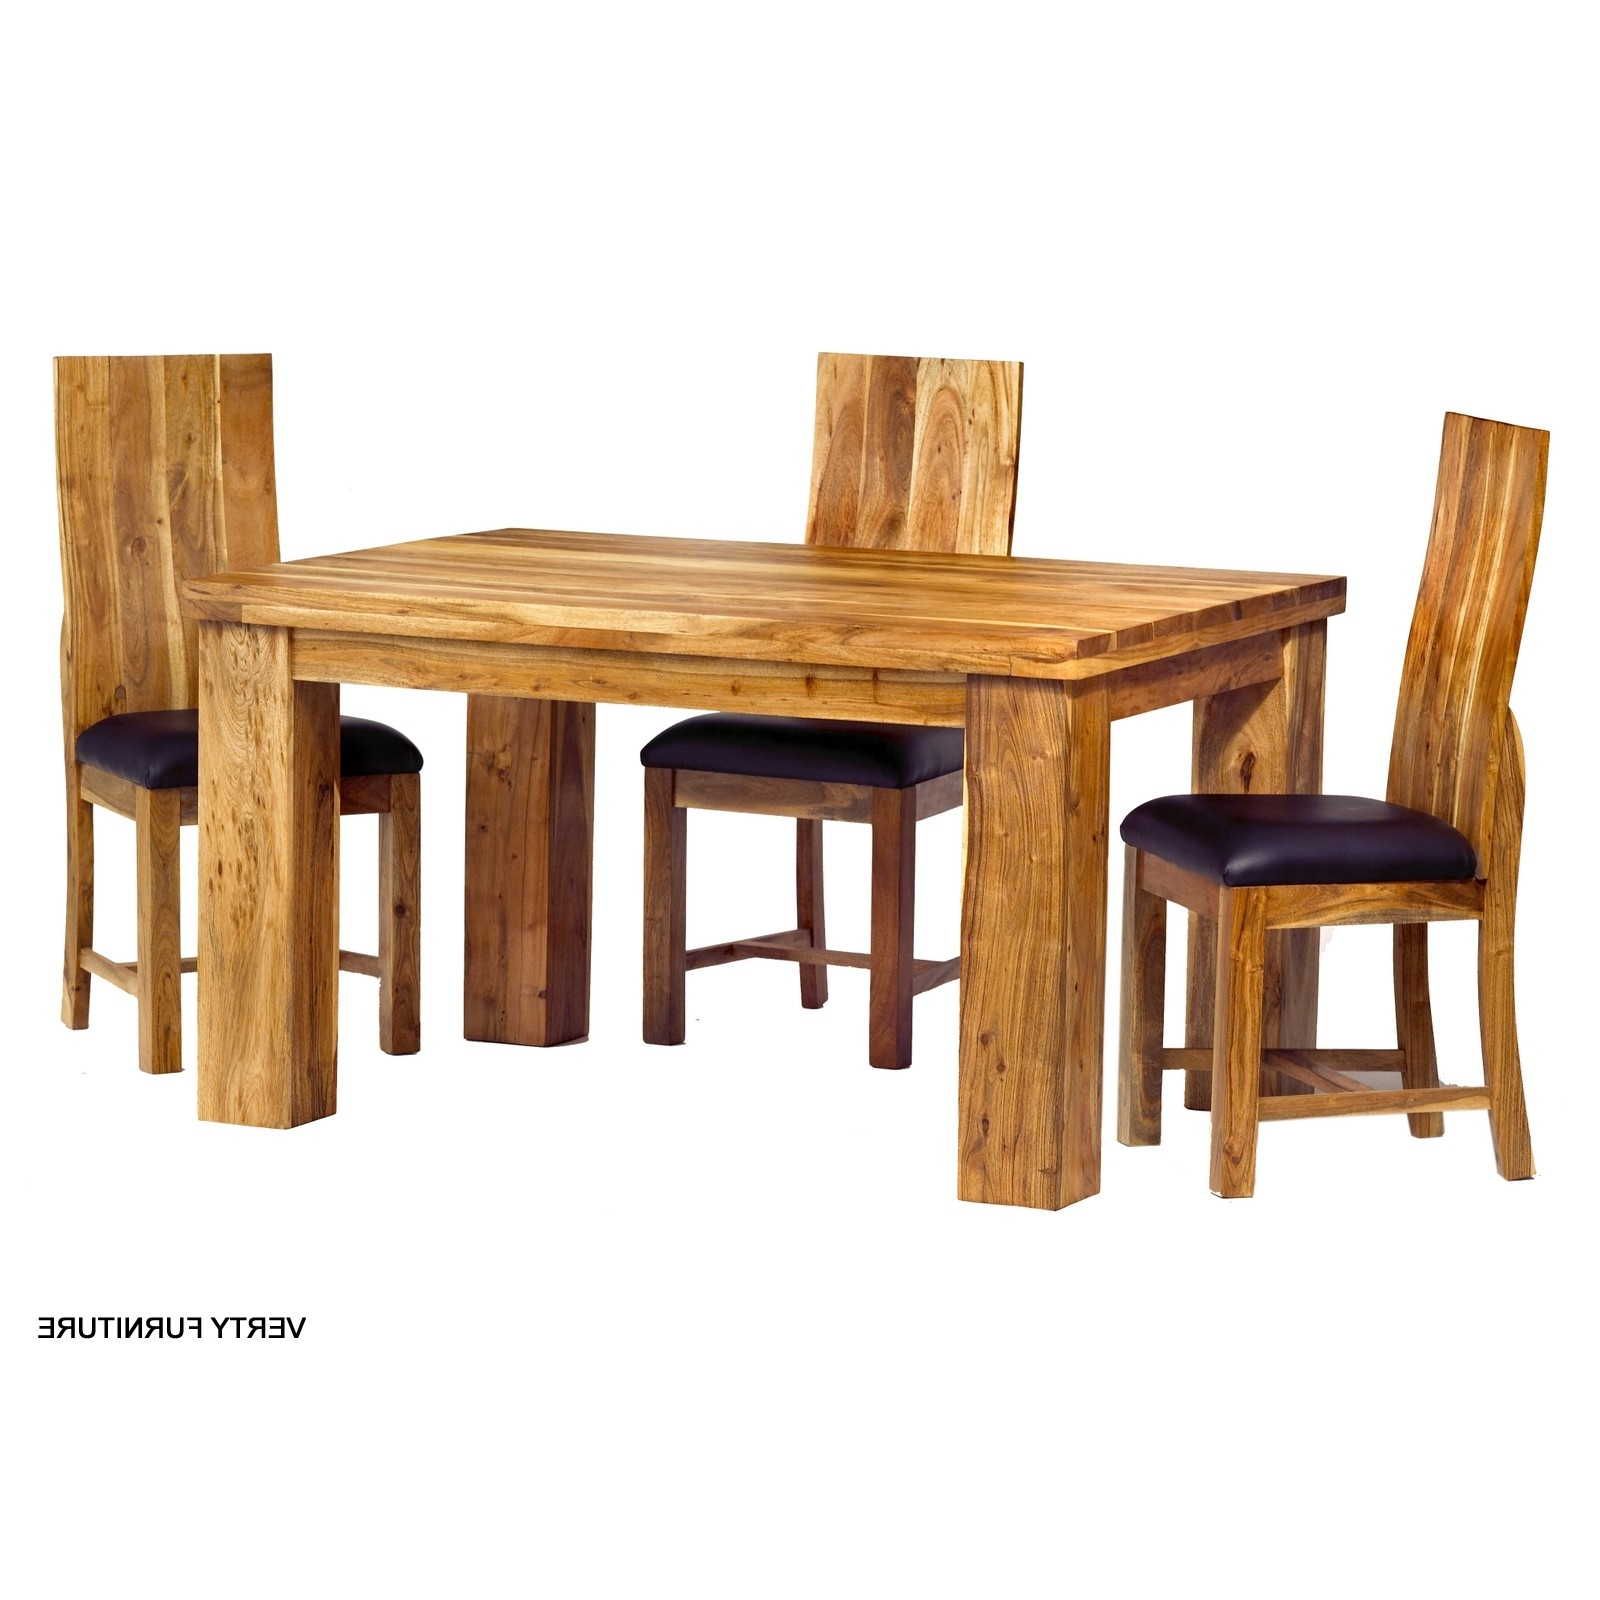 Acacia Dining Table – Small With 4 Chairs – Verty Indian Furniture Within Well Known Indian Wood Dining Tables (Gallery 7 of 25)